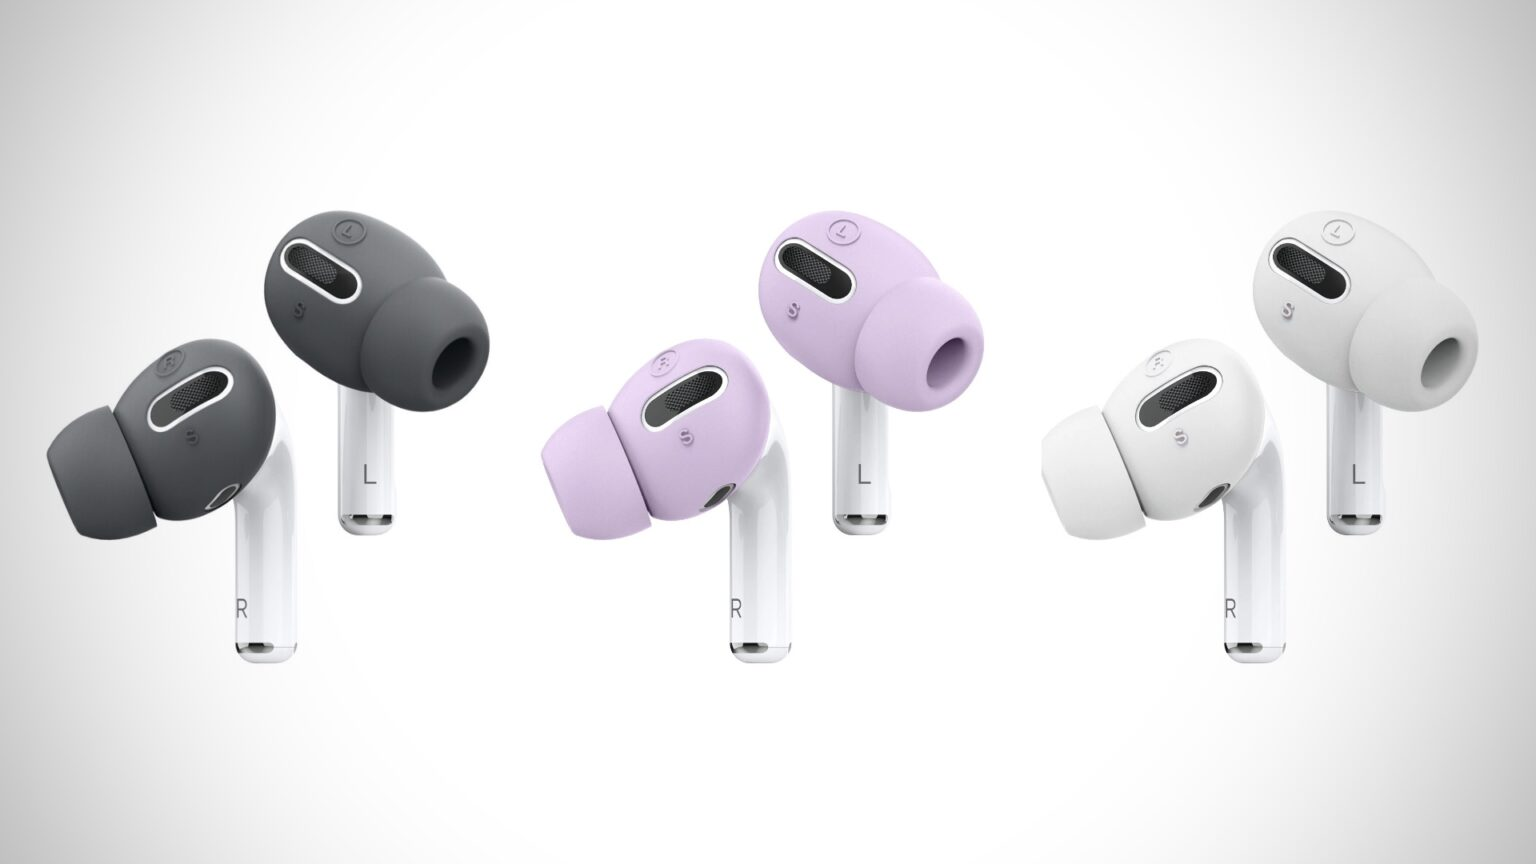 Elago earbuds covers for AirPods Pro